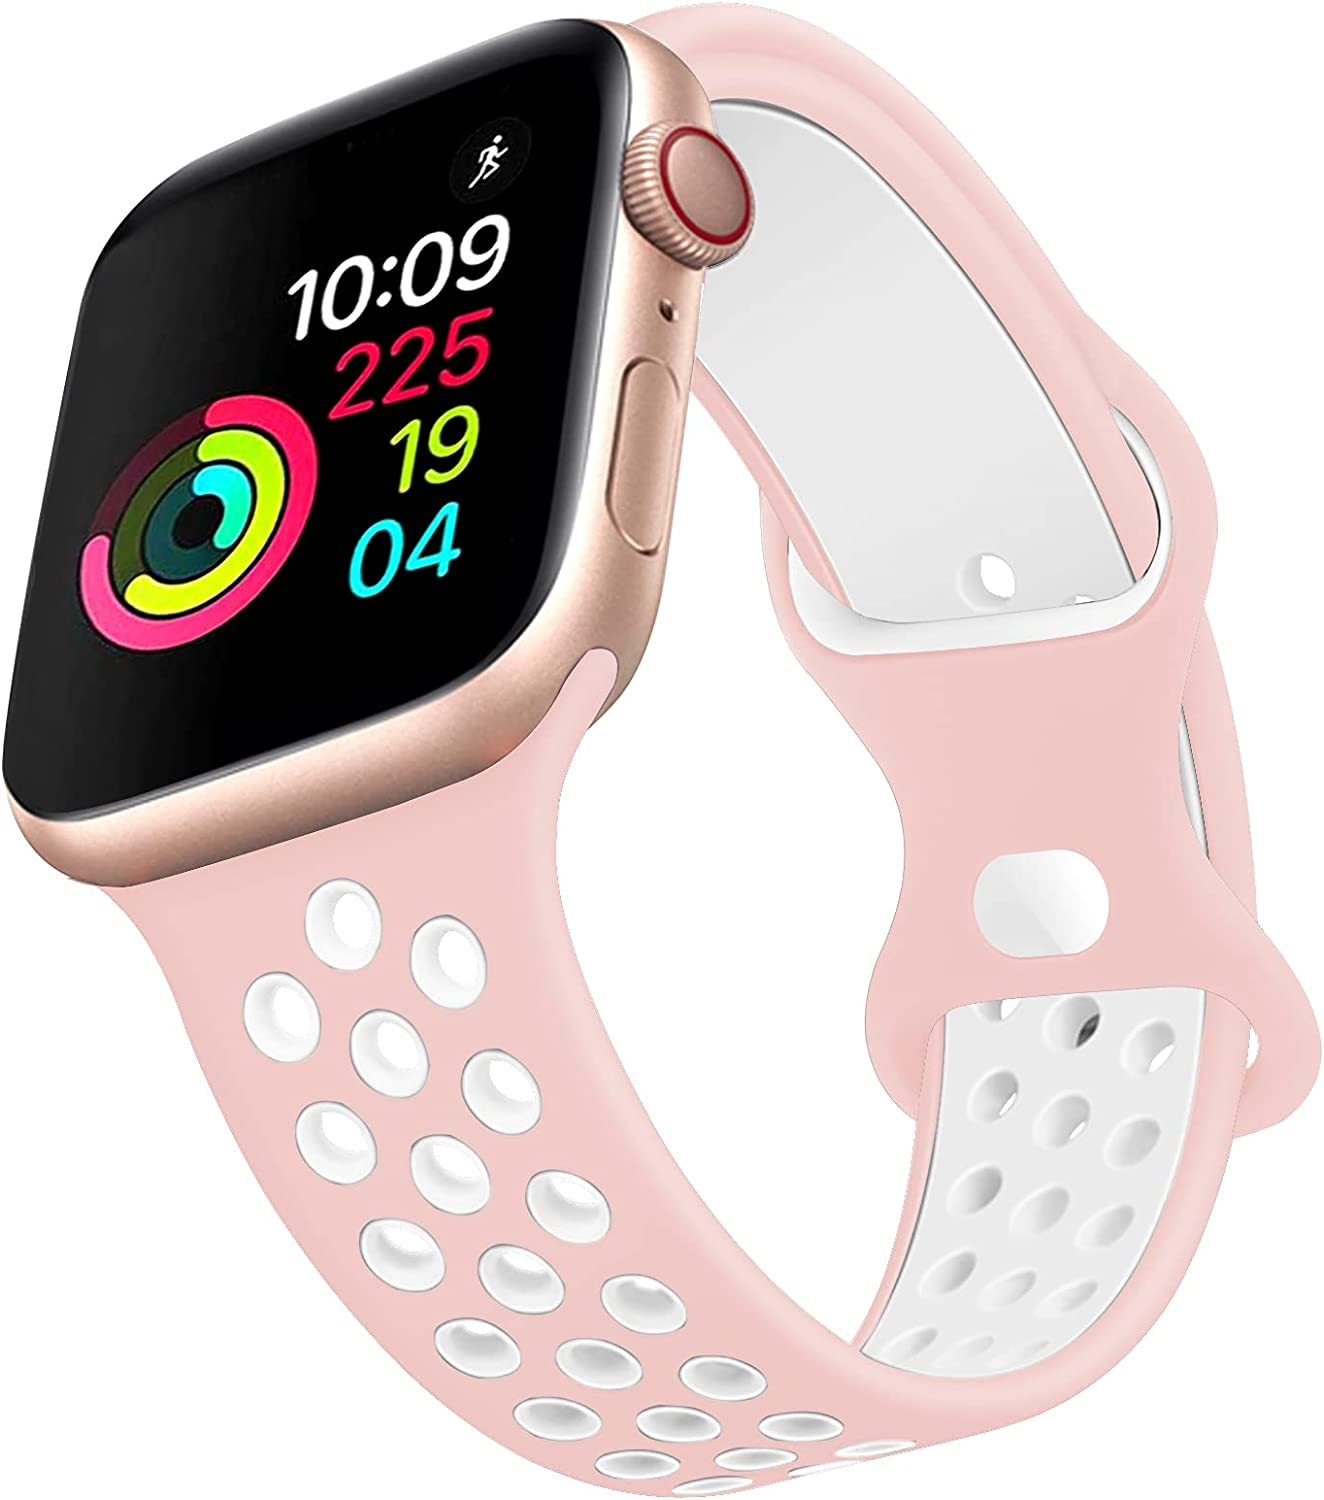 Sport Band Compatible with Apple Watch 42MM 44MM,Soft Silicone Replacement Strap Compatible for Apple Watch Series 6/5/4/3/2/1/SE (Pink white, 38mm/40mm (S))